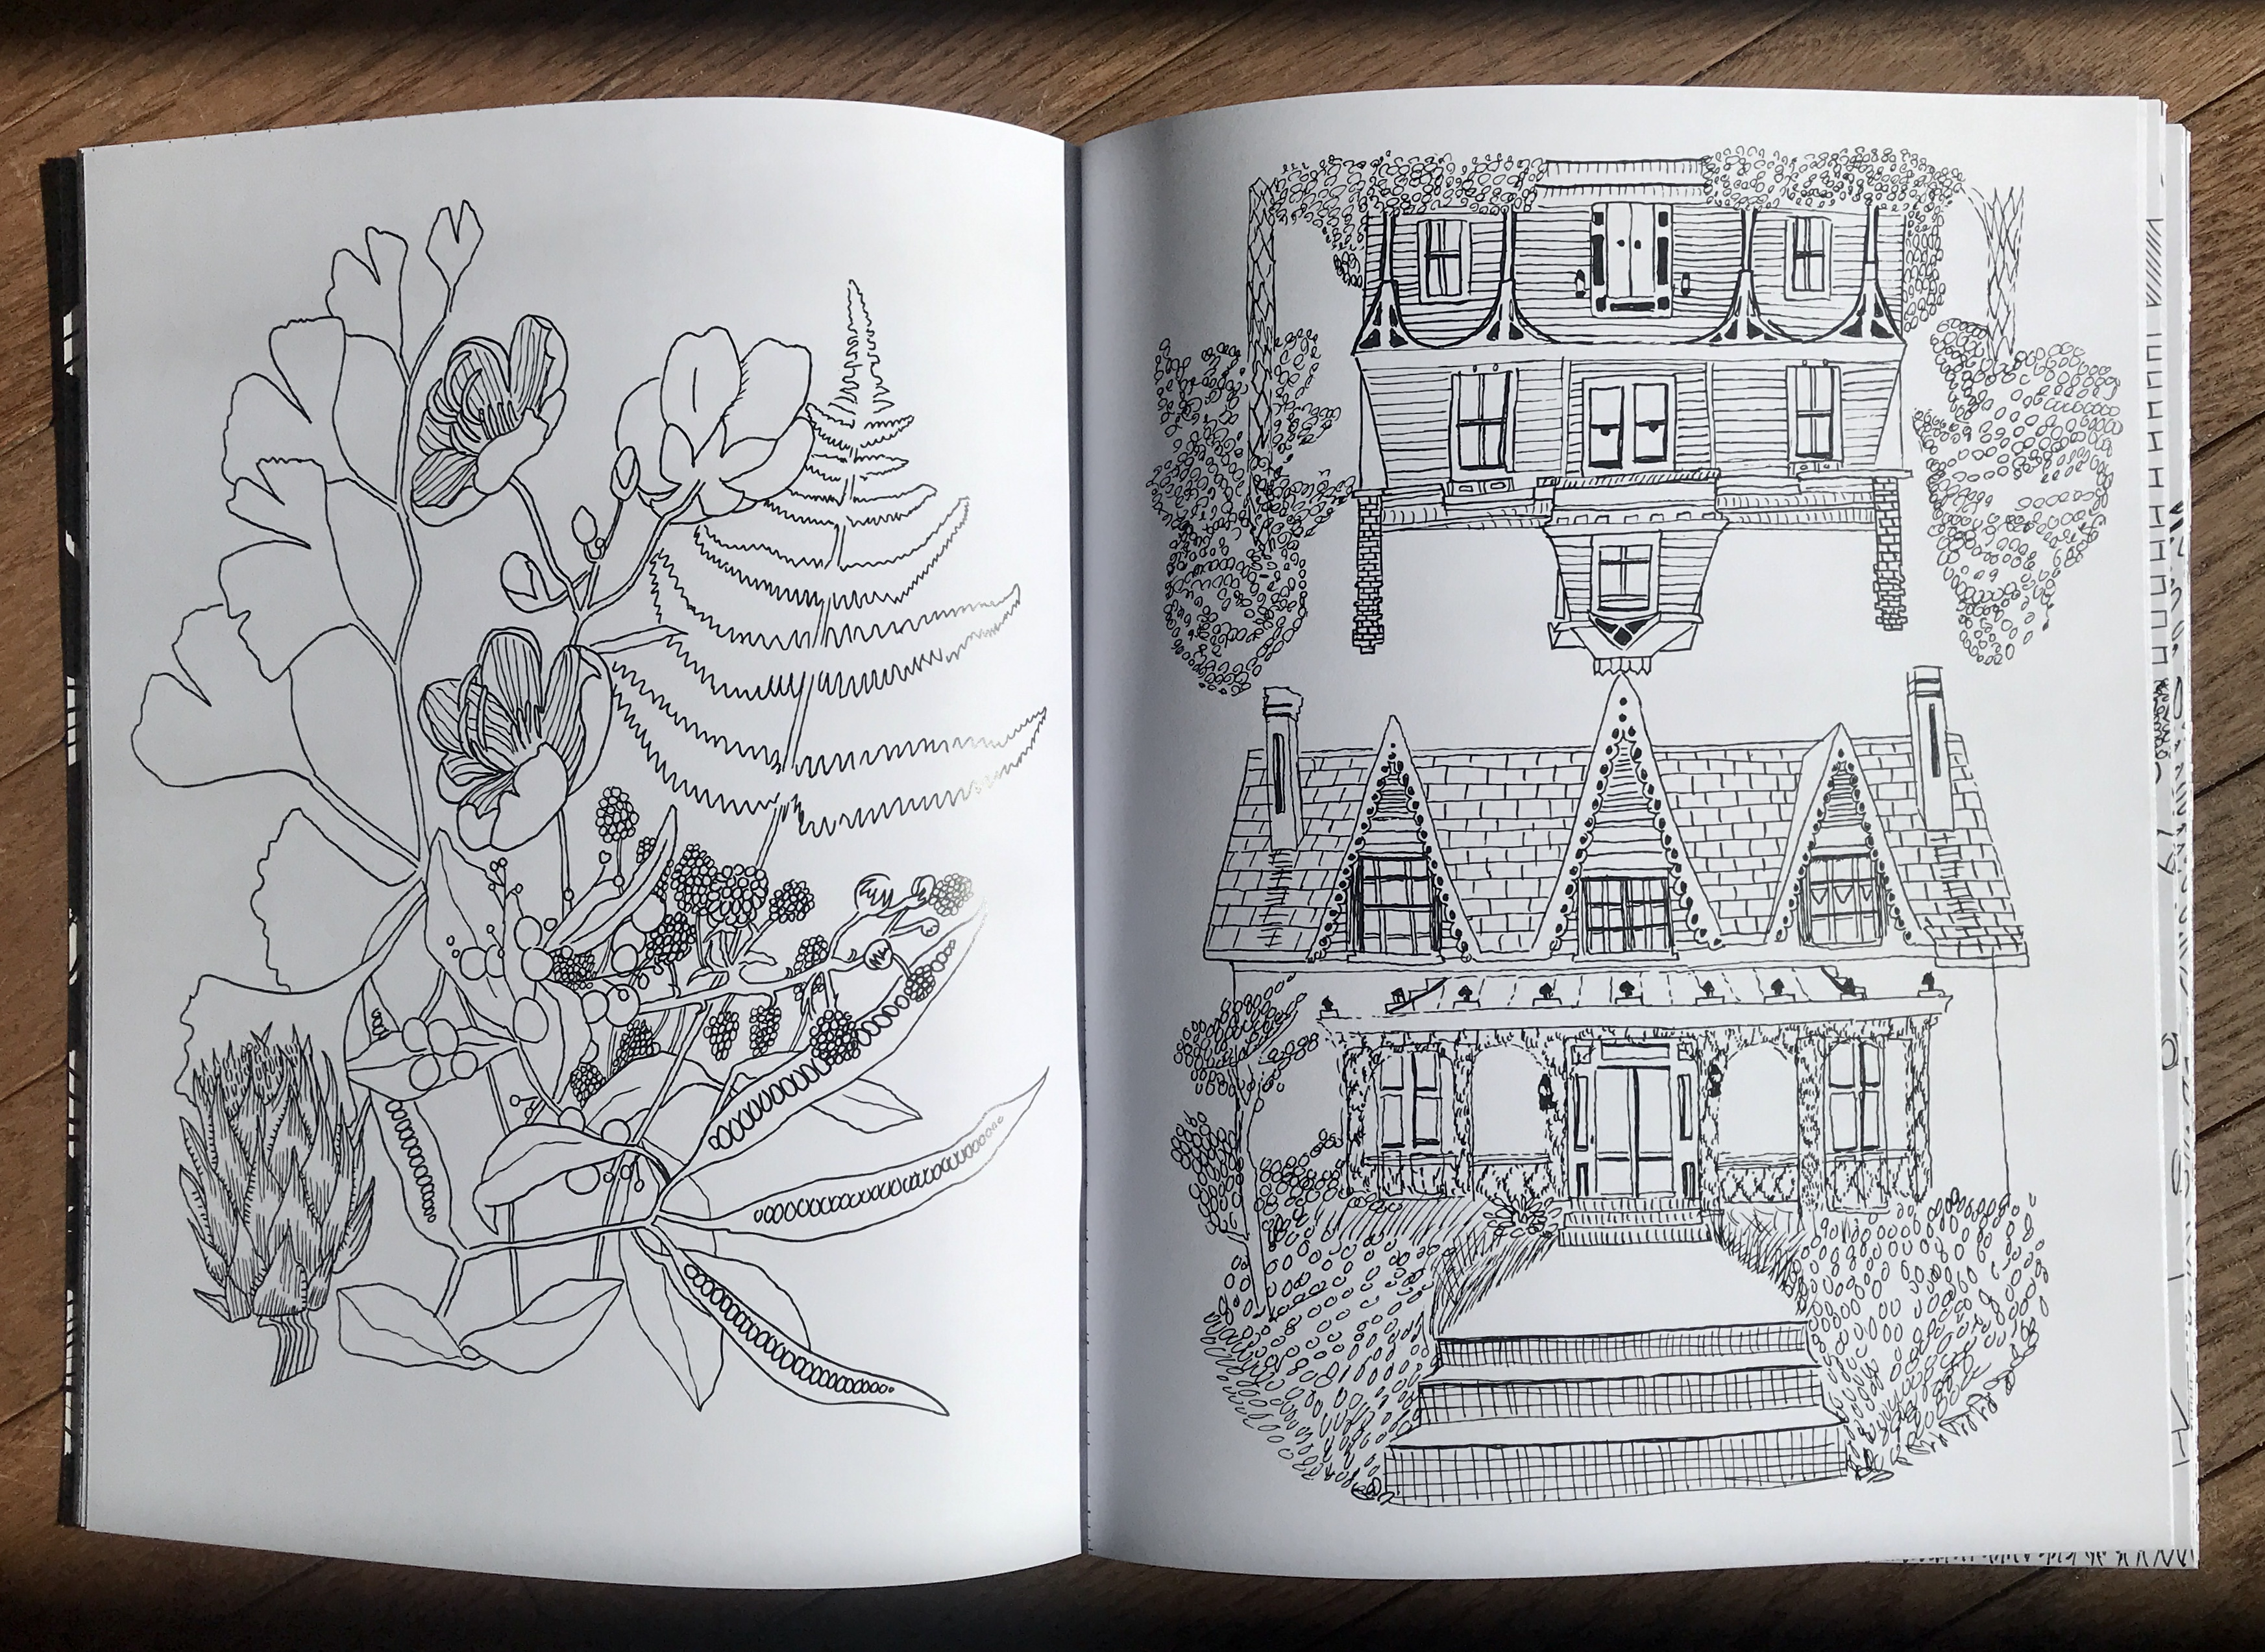 a coloring book interior with a bouquet and homes